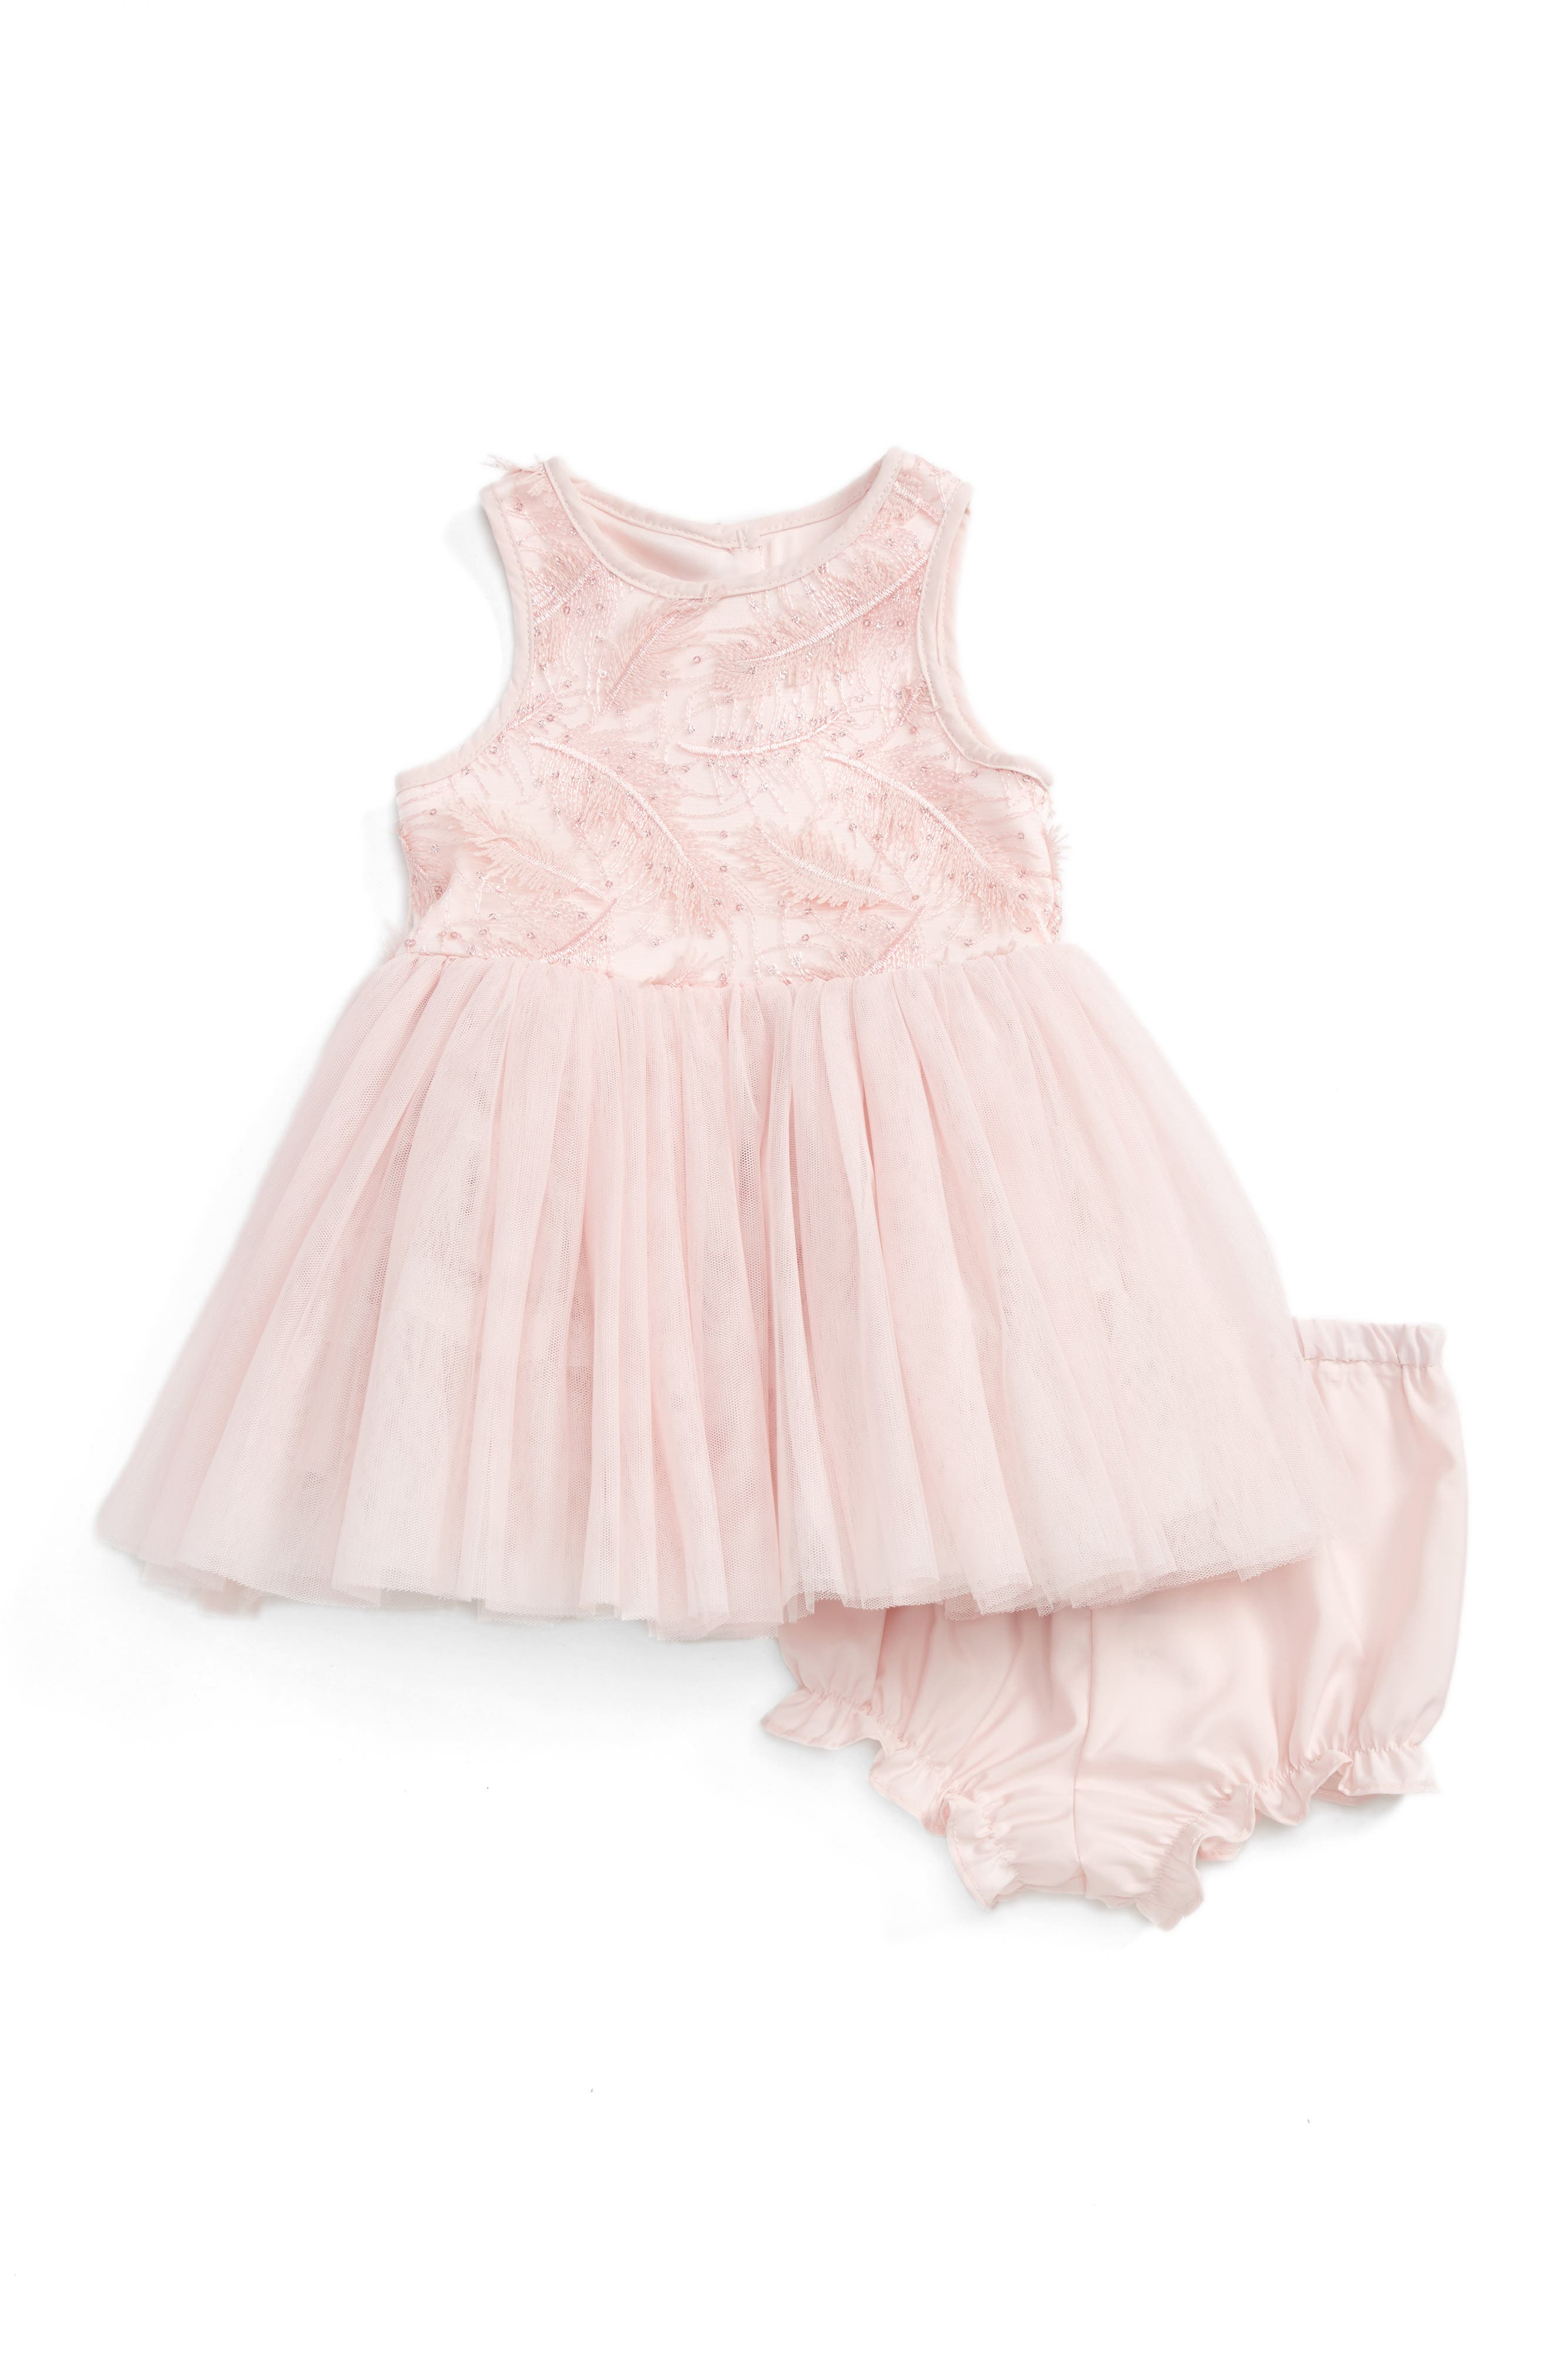 Pippa & Julie Feather Embroidered Party Dress (Baby Girls)